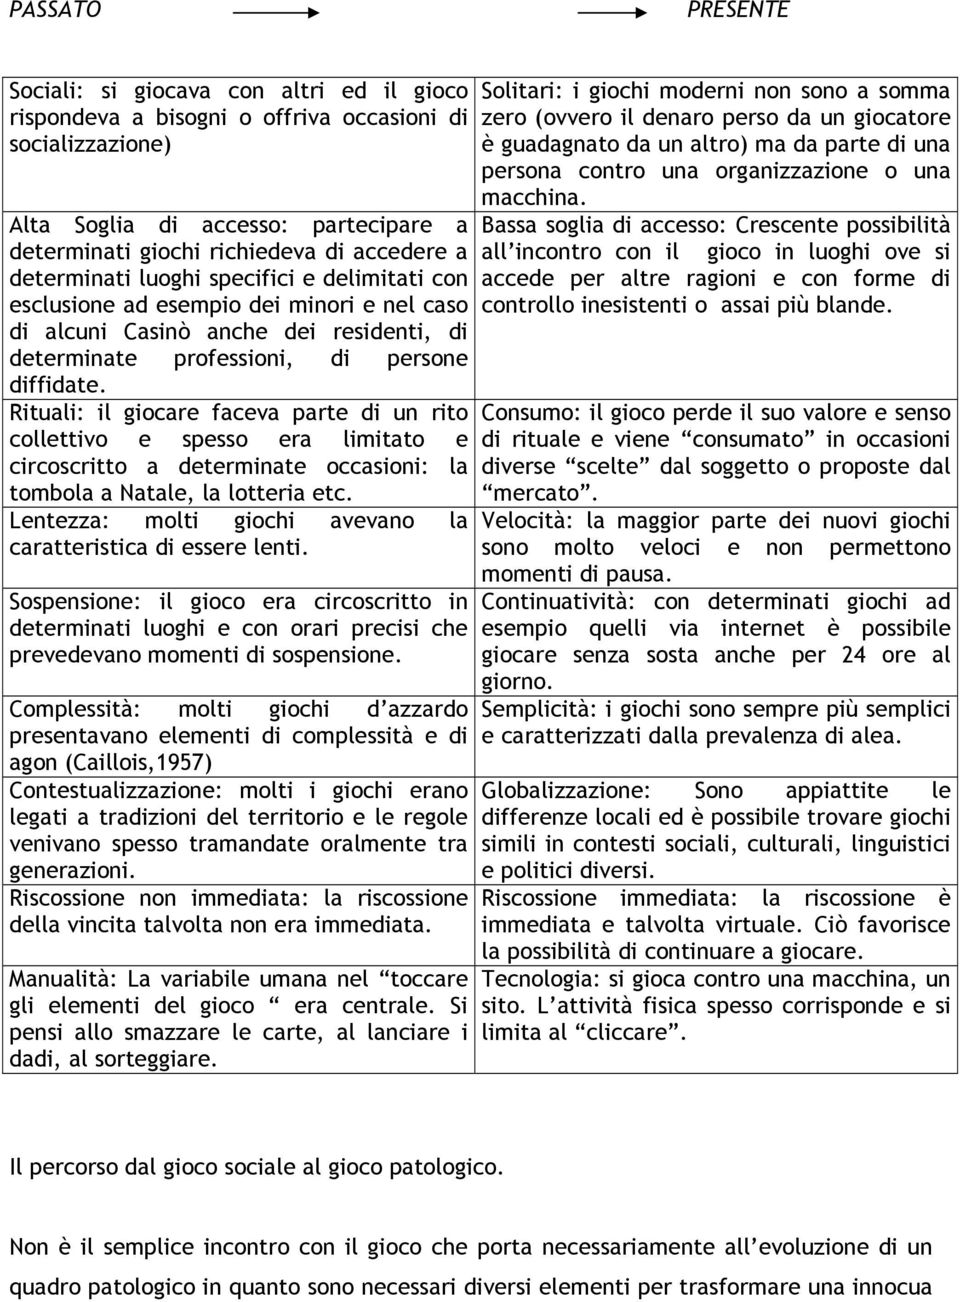 Rituali: il giocare faceva parte di un rito collettivo e spesso era limitato e circoscritto a determinate occasioni: la tombola a Natale, la lotteria etc.